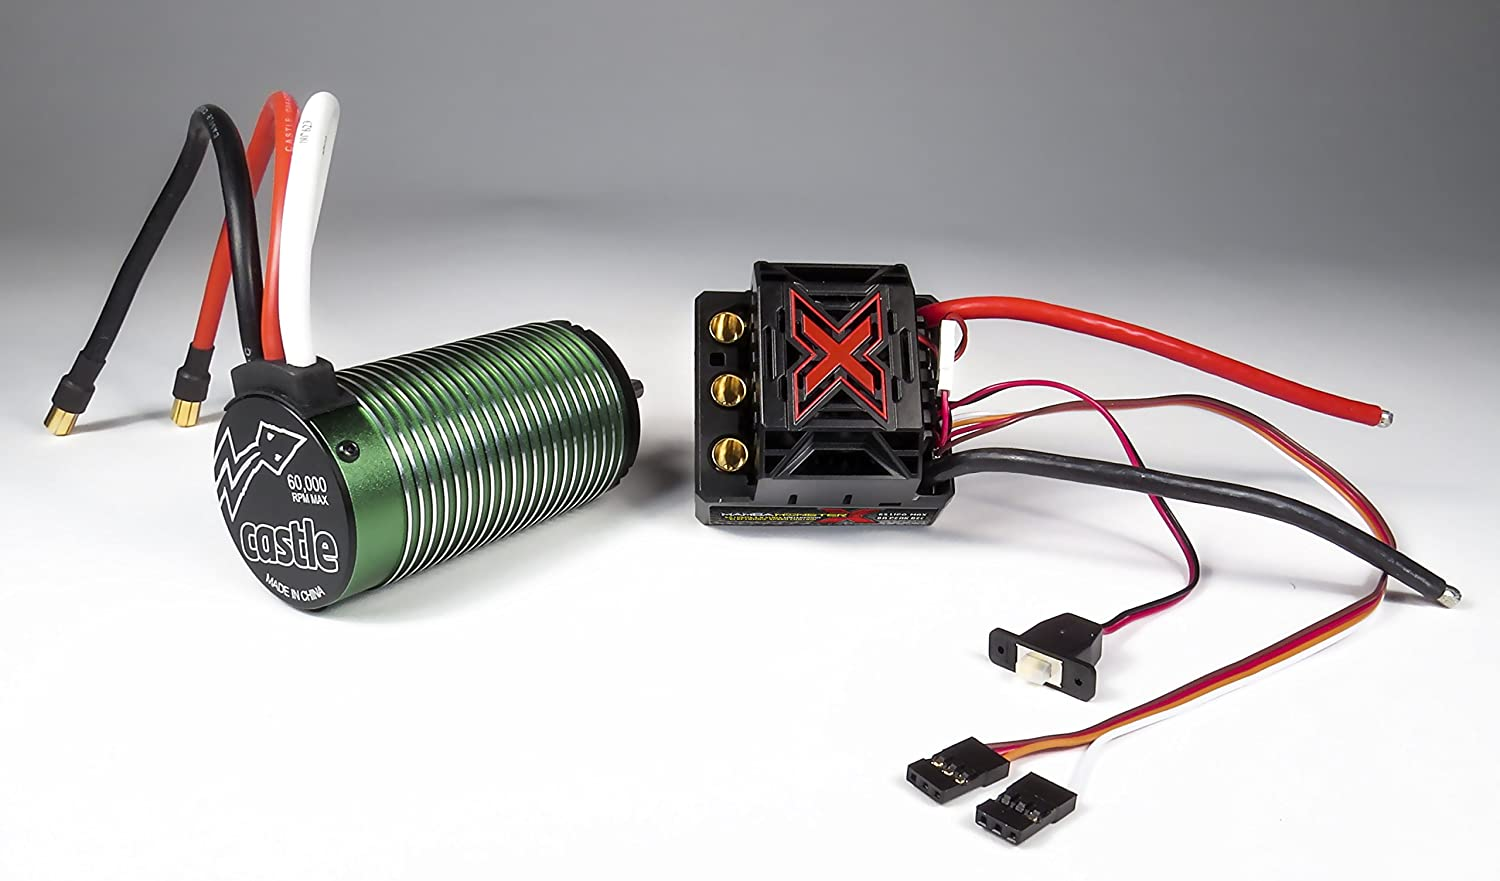 Castle Creations Monster X 252v 8a Peak Bec Cable With Regulator To Provide The Battery Eliminator Circuit Function 1512 2650kv Motor Electronic Speed Controller Toys Games